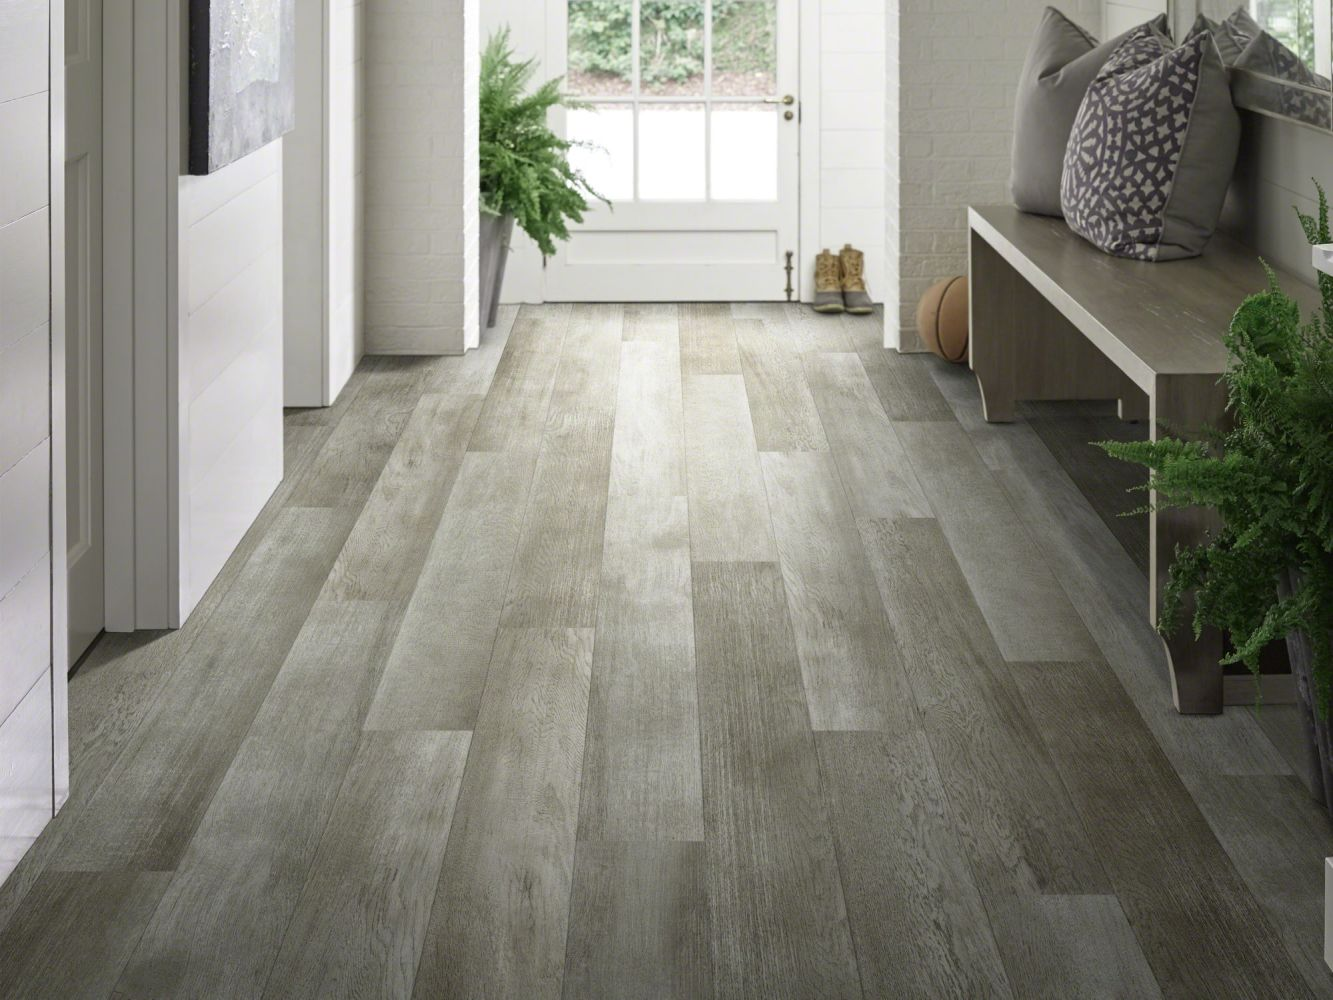 Shaw Floors Resilient Residential Three Rivers 20 Steel City 00174_0882V